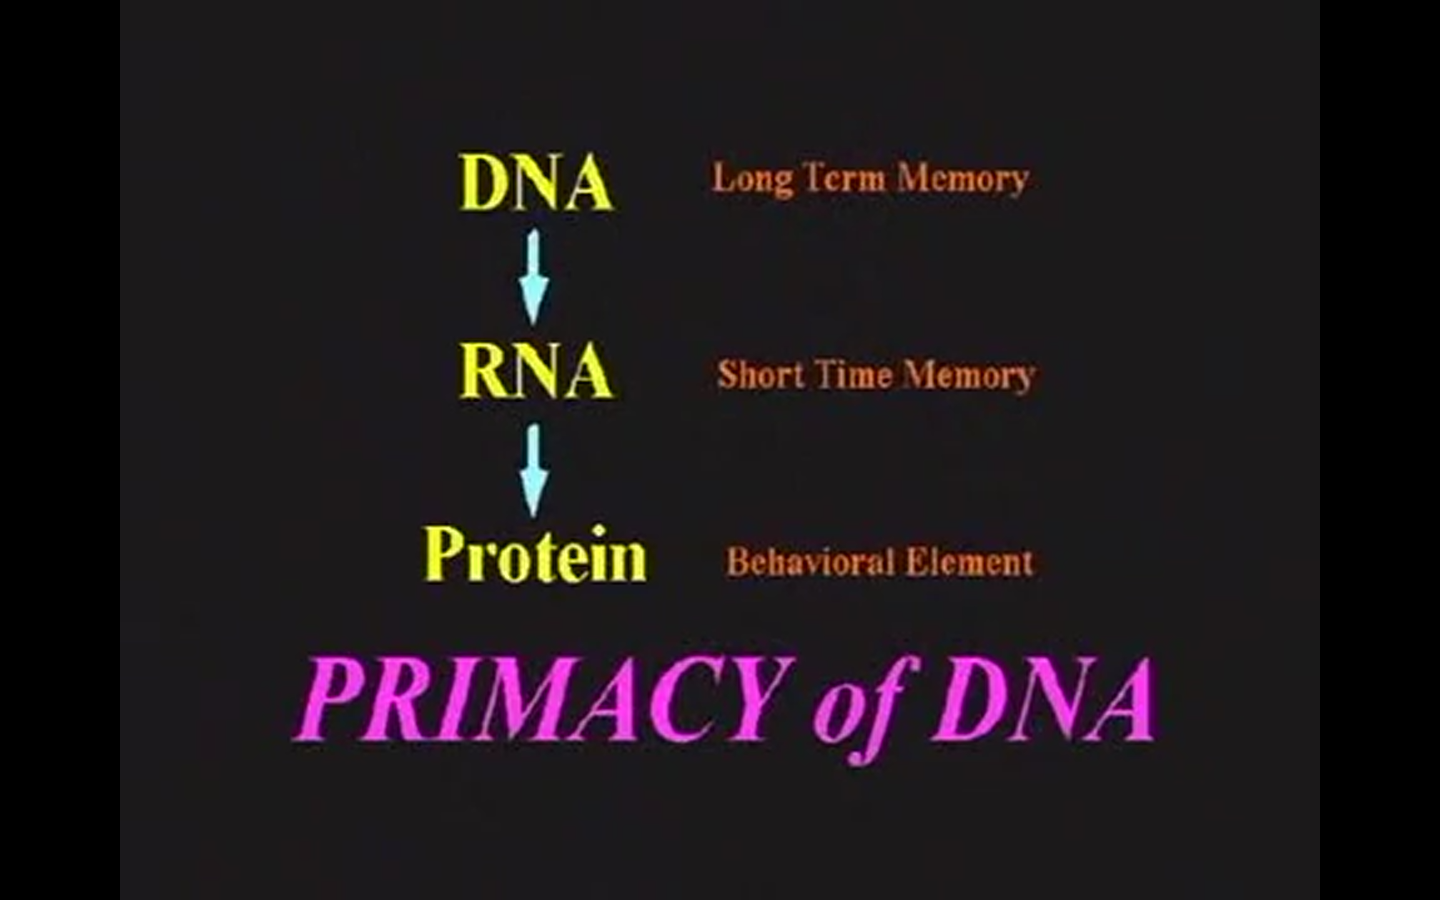 Dna Quotes And Sayings: Motivational Biology With Dr Bruce Lipton, Cancer Quack